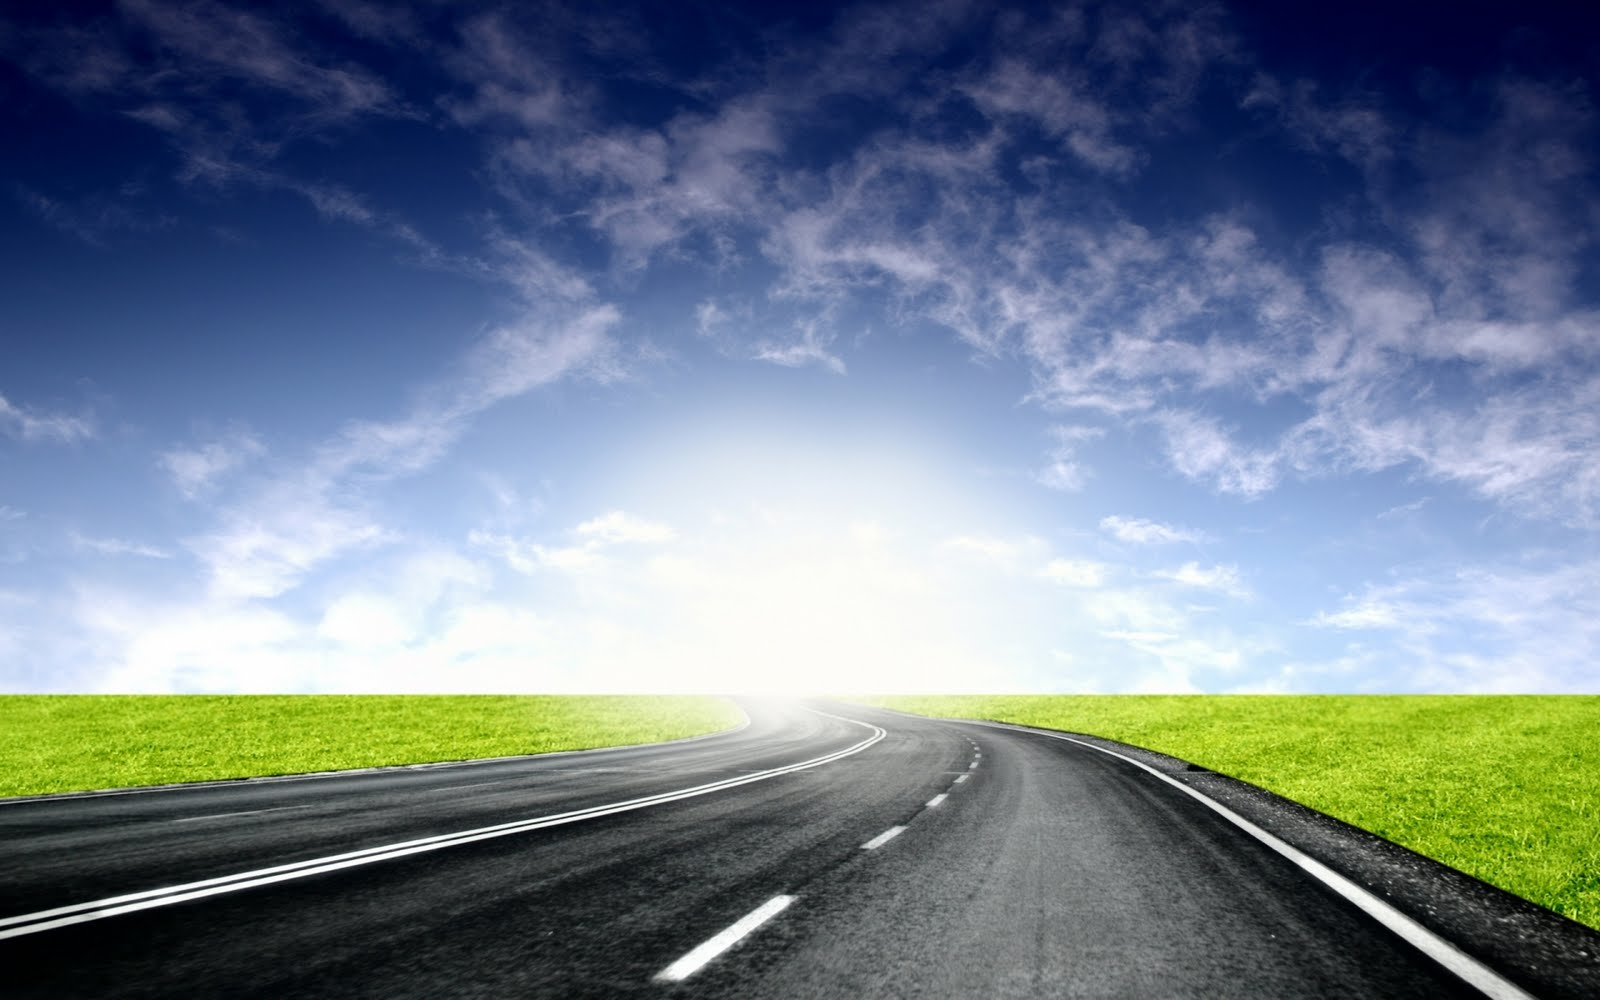 Long Road Wallpaper PC